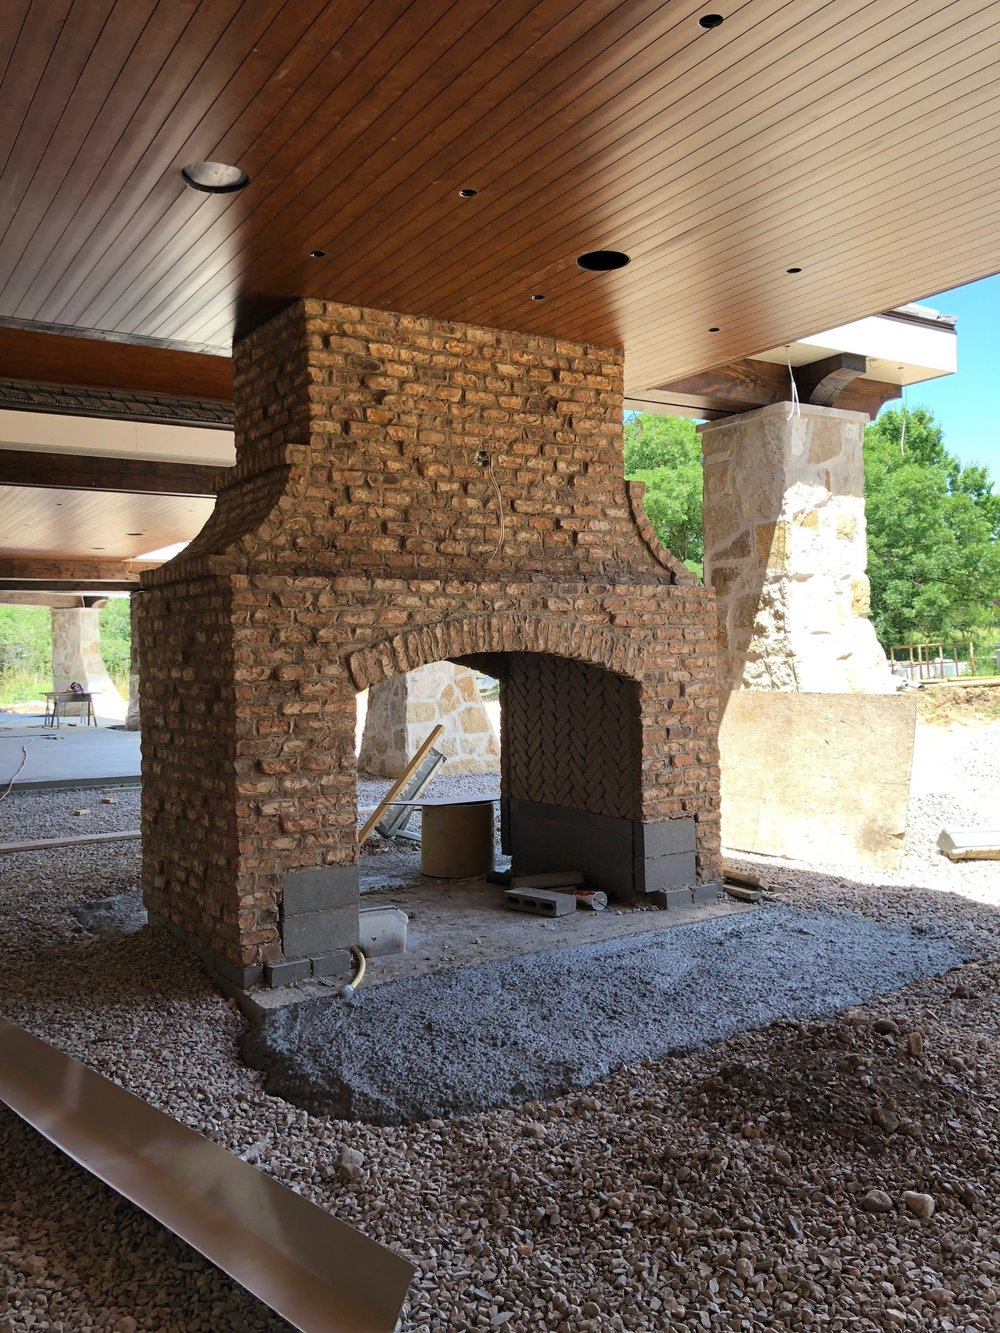 One of the first things you'll see once you step outside is this beautiful double-sided fireplace.